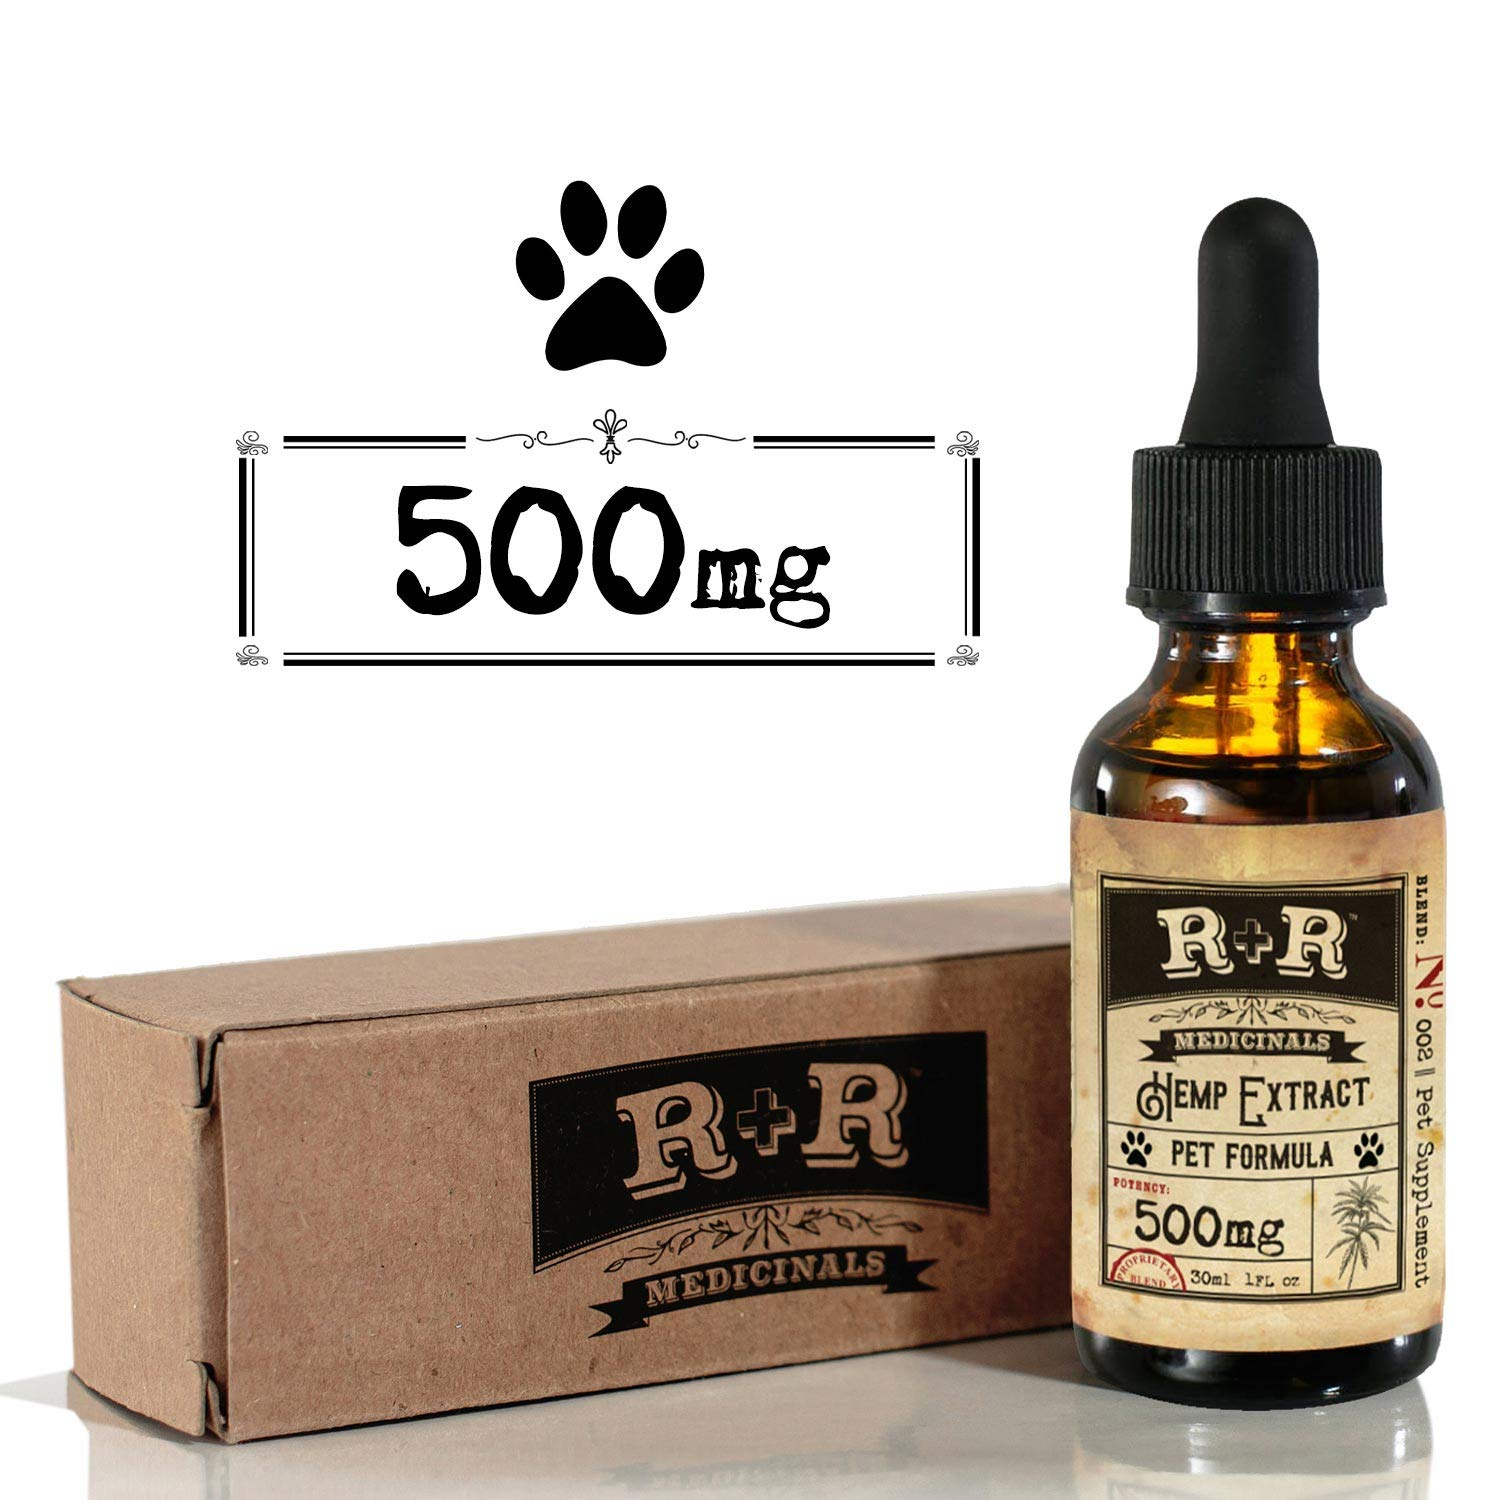 R+R Medicinals Hemp Oil for Dogs :: Hemp Oil for Pets :: Hemp Oil for Cats :: Hemp Oil for Stress Relief, Anxiety, Pain, Calming Relief (500mg, 16.7mg Serving x 30 Servings) by R+R Medicinals